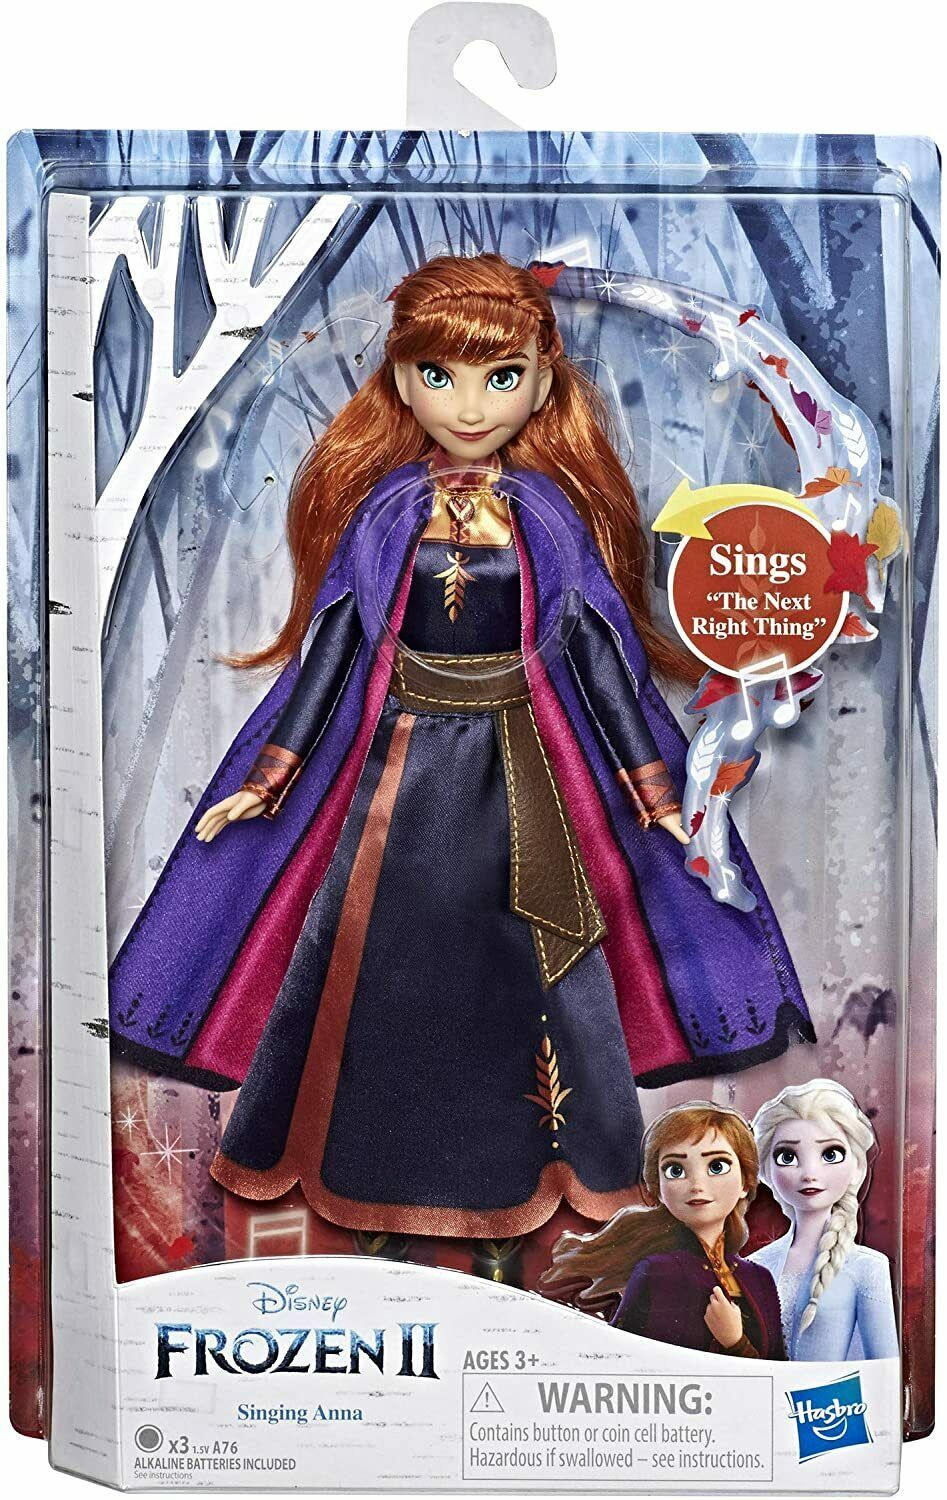 Primary image for Disney Frozen II Light Up Singing Elsa or Anna Doll